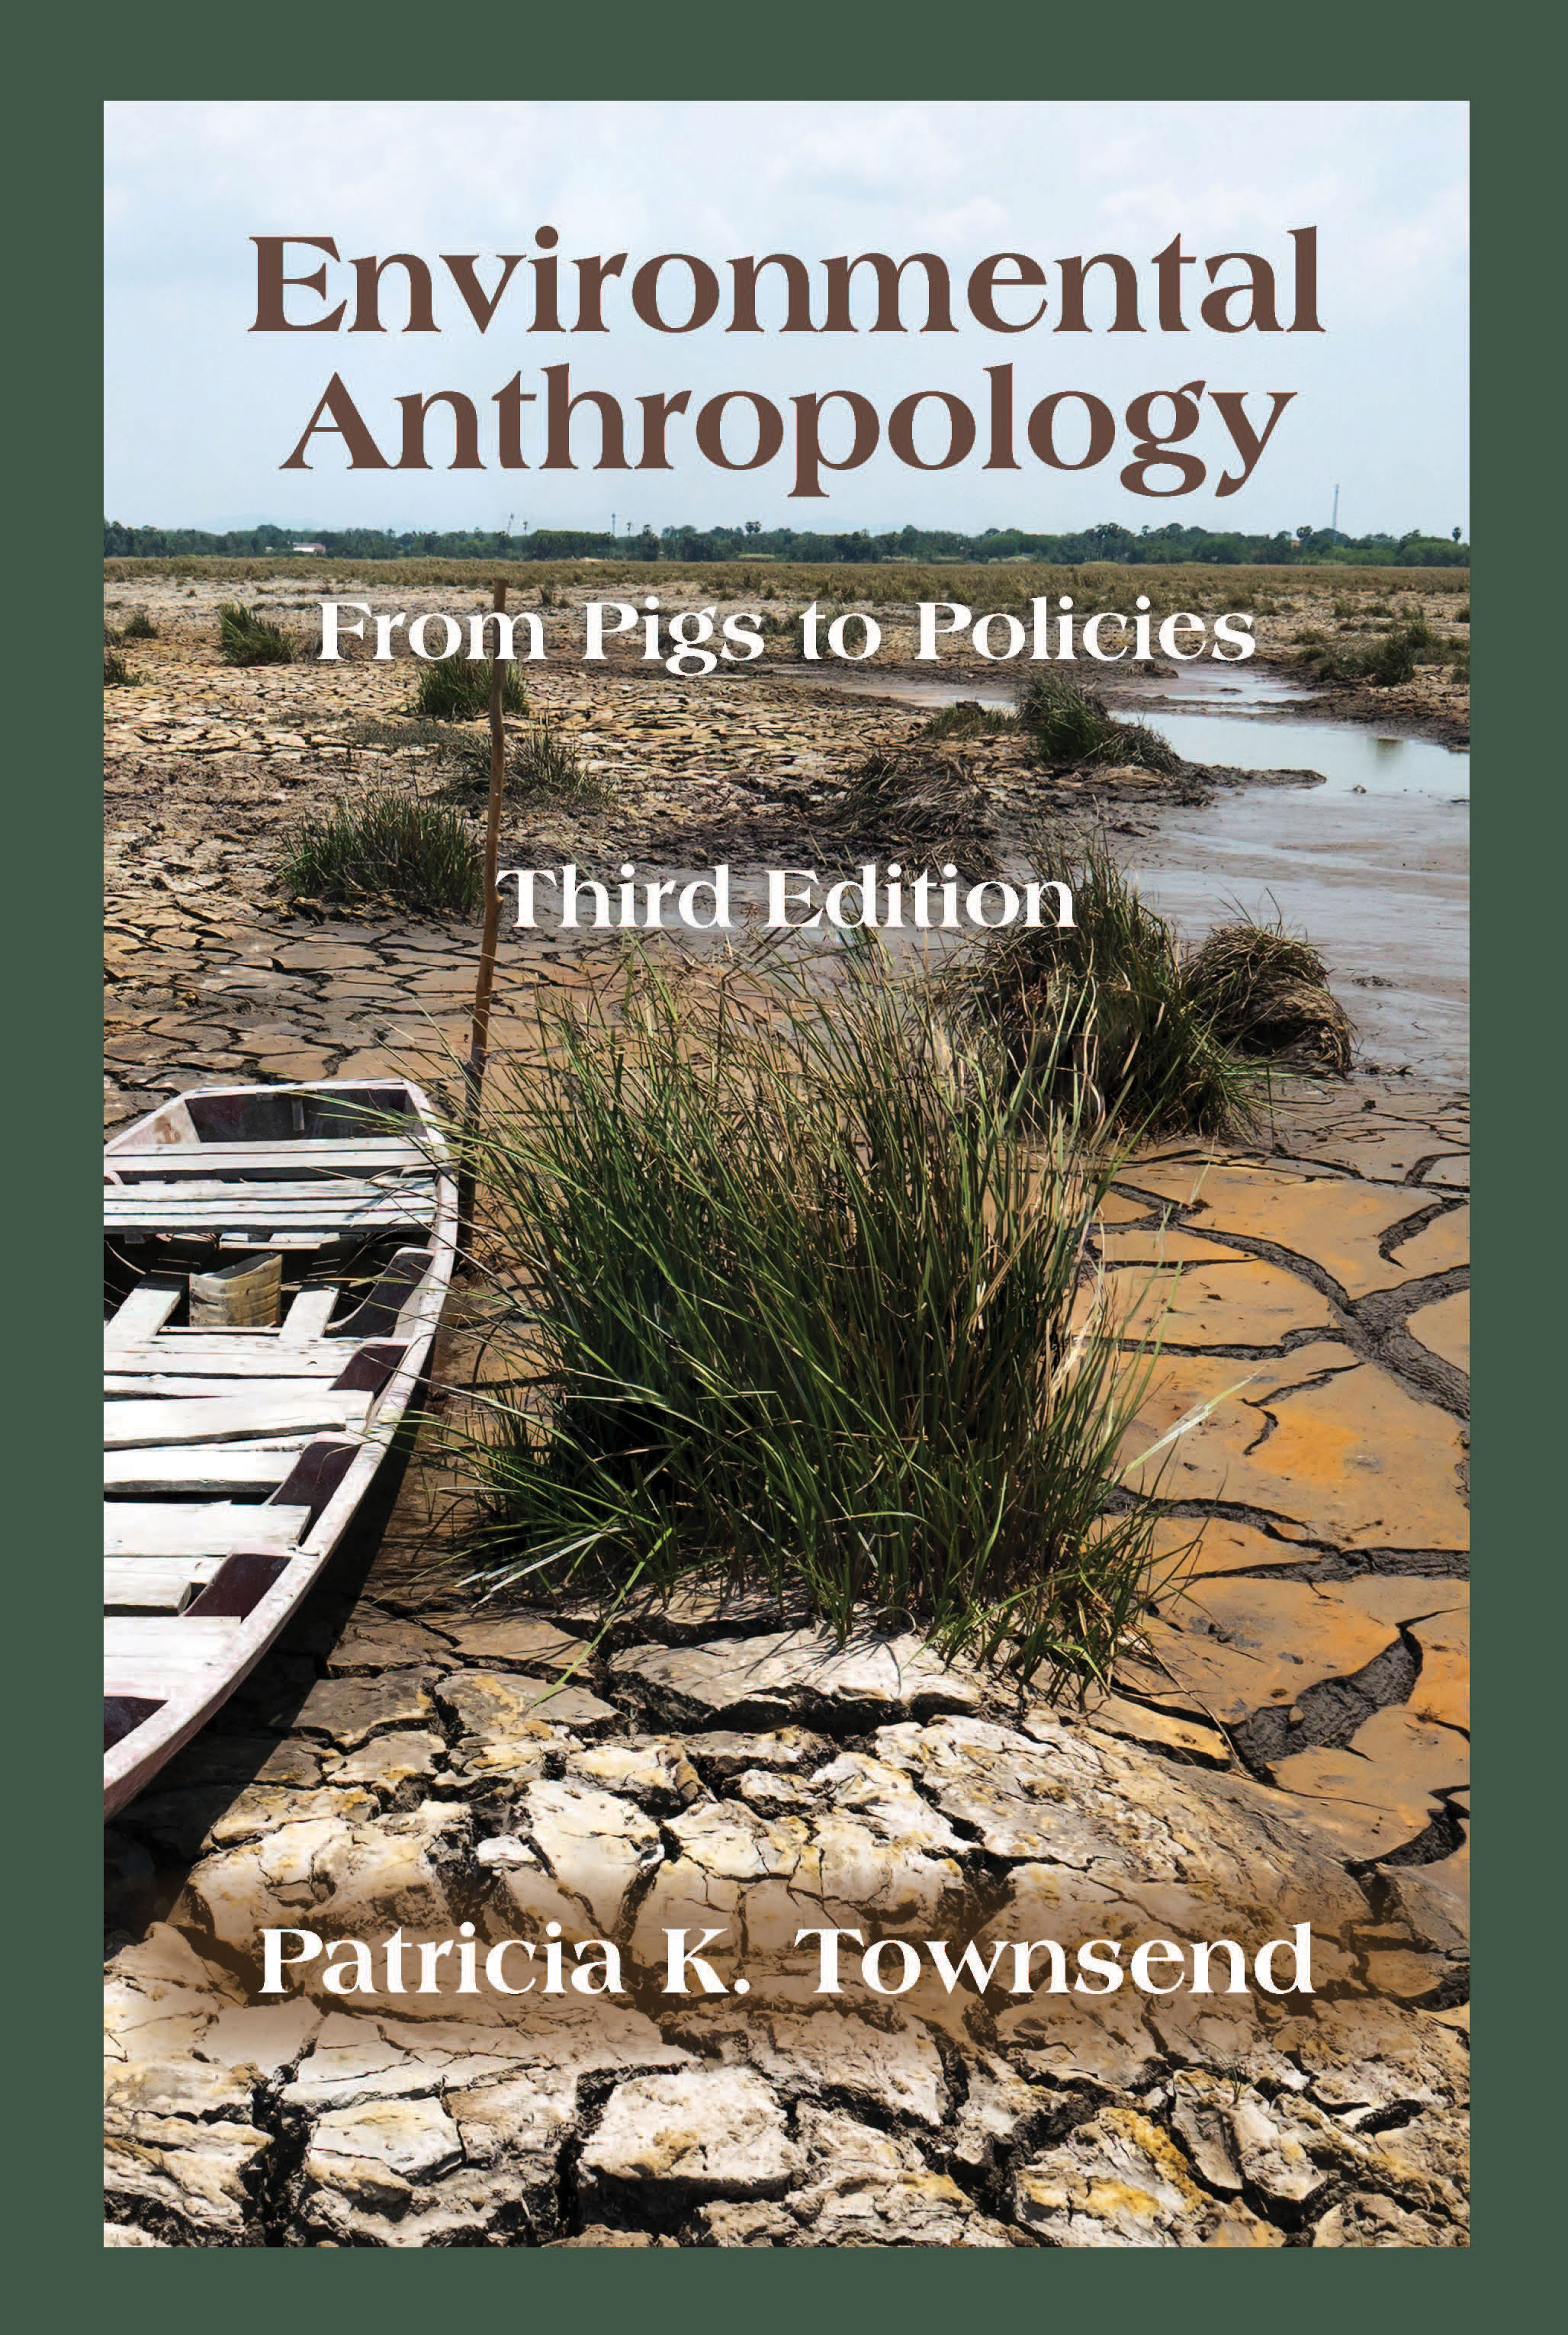 Environmental Anthropology: From Pigs to Policies, Third Edition by Patricia K. Townsend